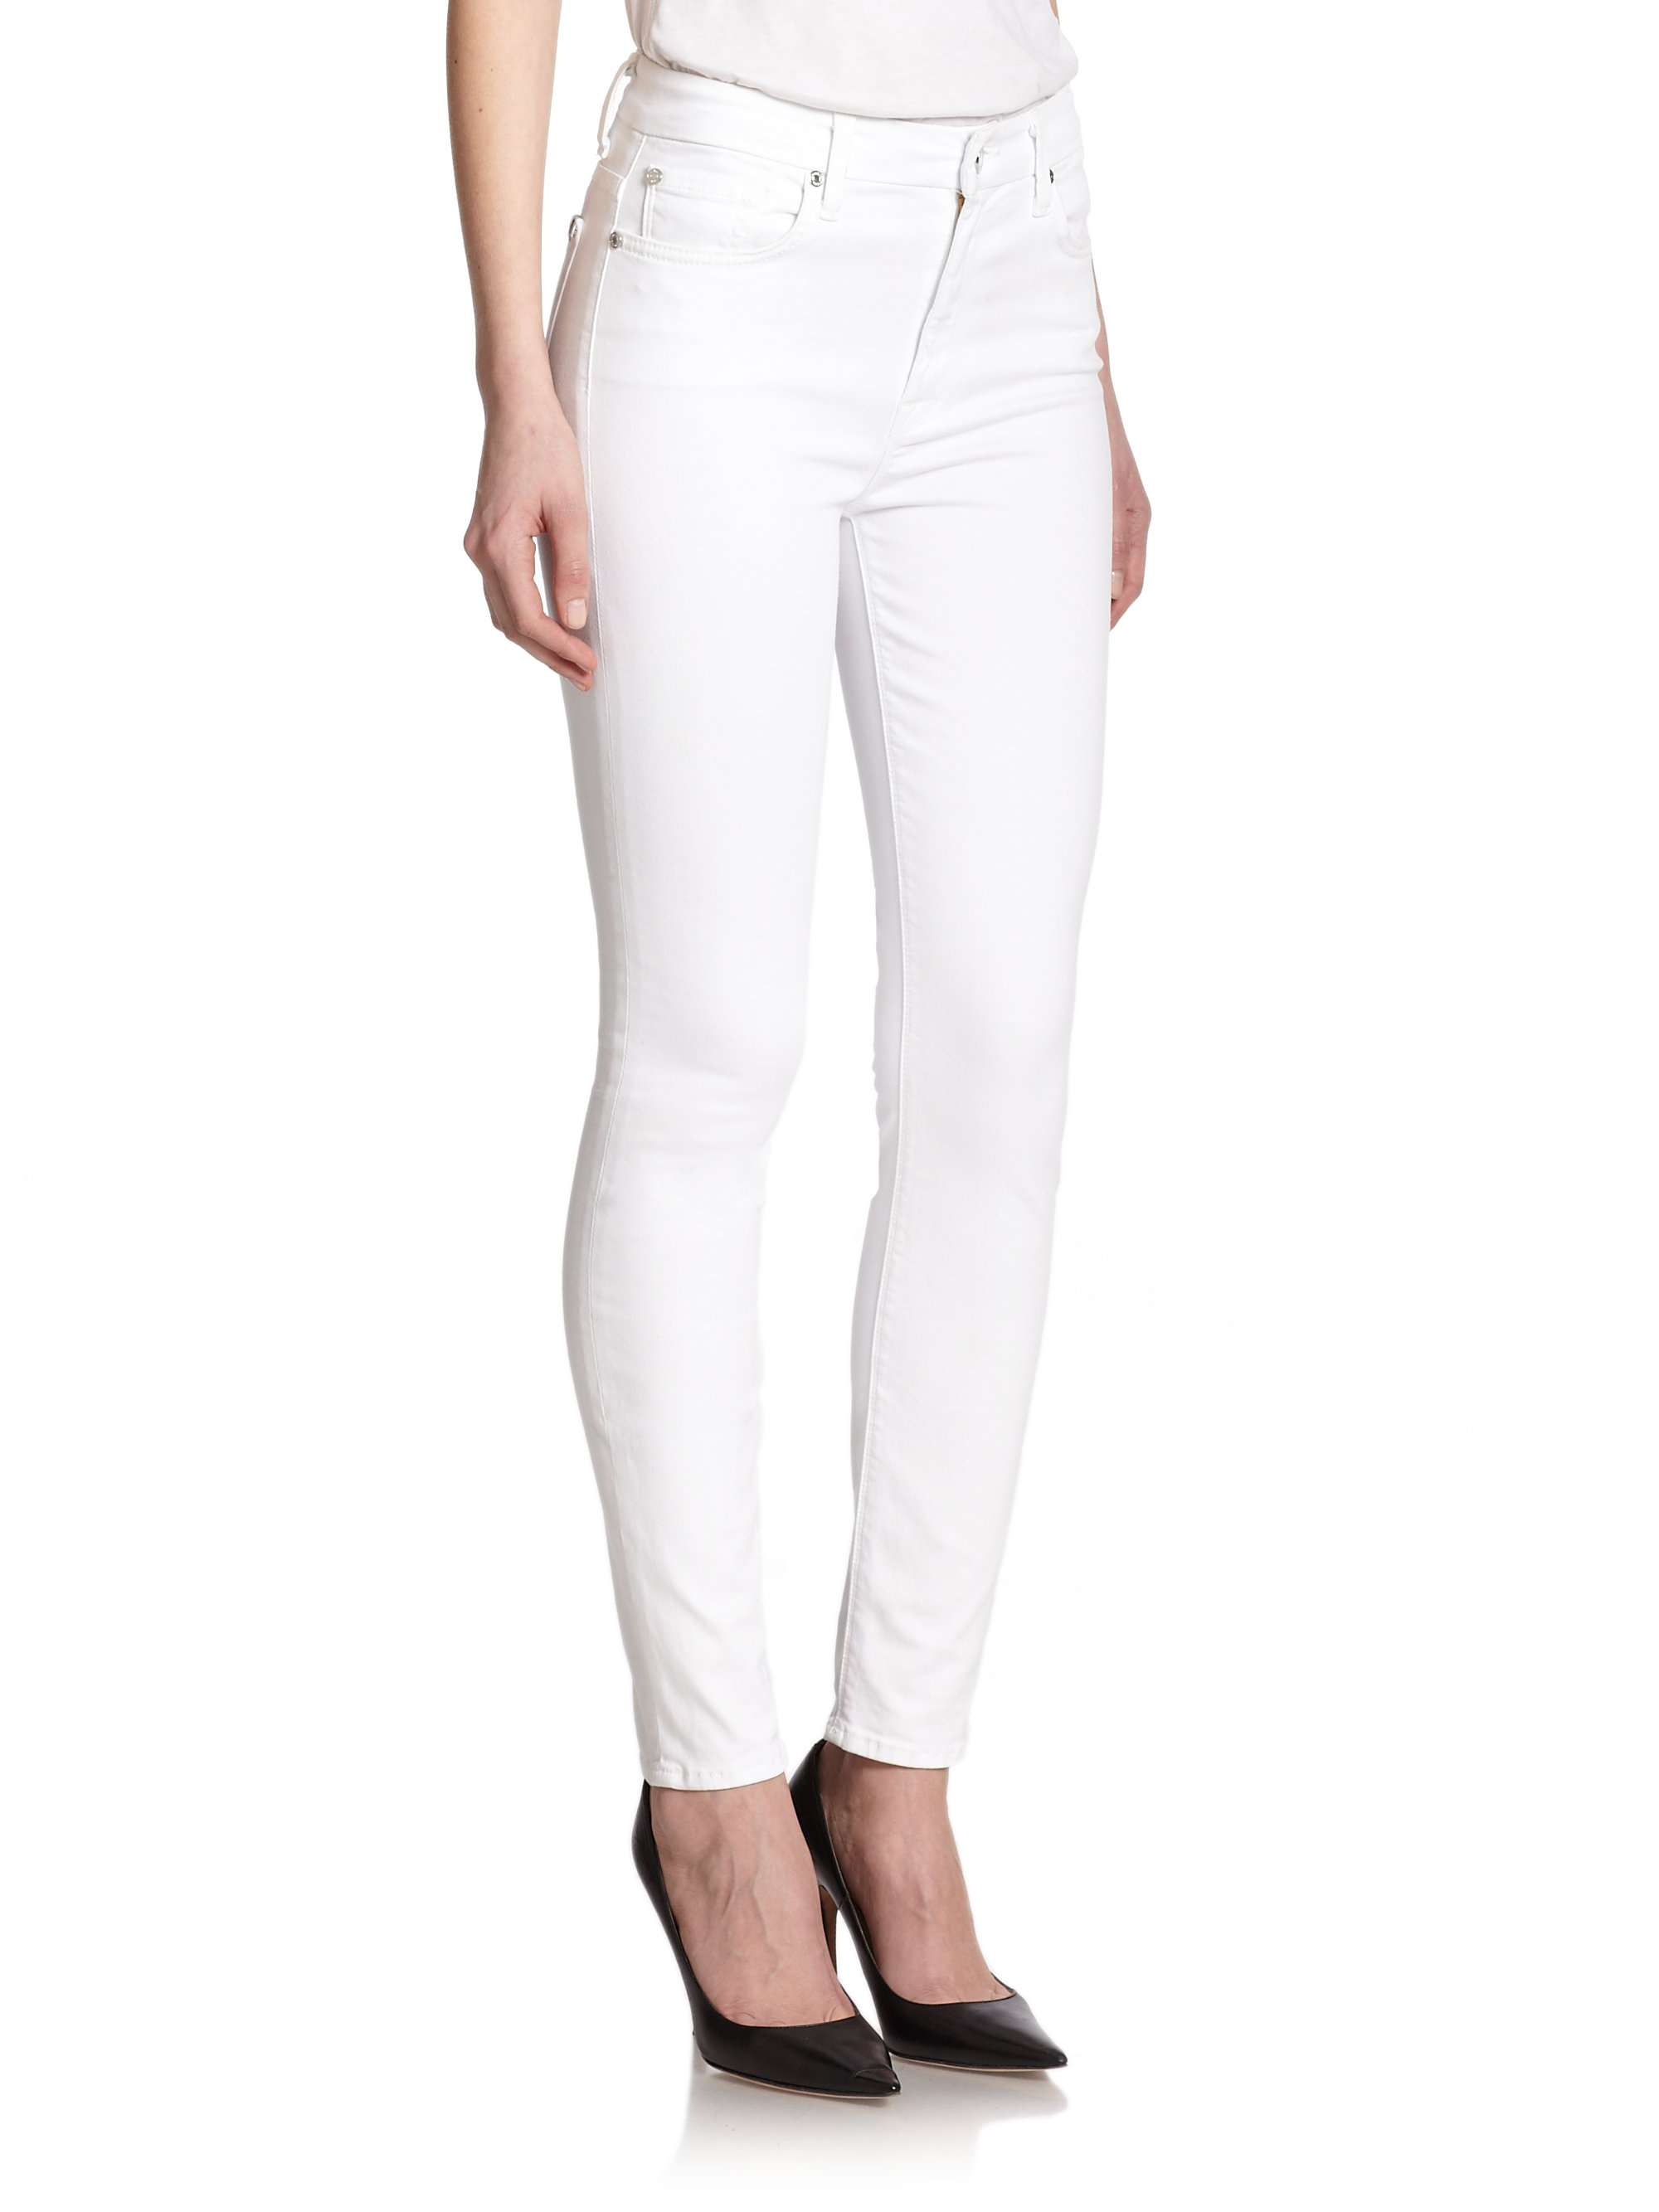 Showing 78 all white high waisted pants Related Searches: White Elastic Waist Women's Pants High Waisted White Pants High Waisted Pant Ivory Cream High Waist Pant White High Waisted Skinny Pants View Related Searches at Talbots Talbots Stripe High-Waist Wide.